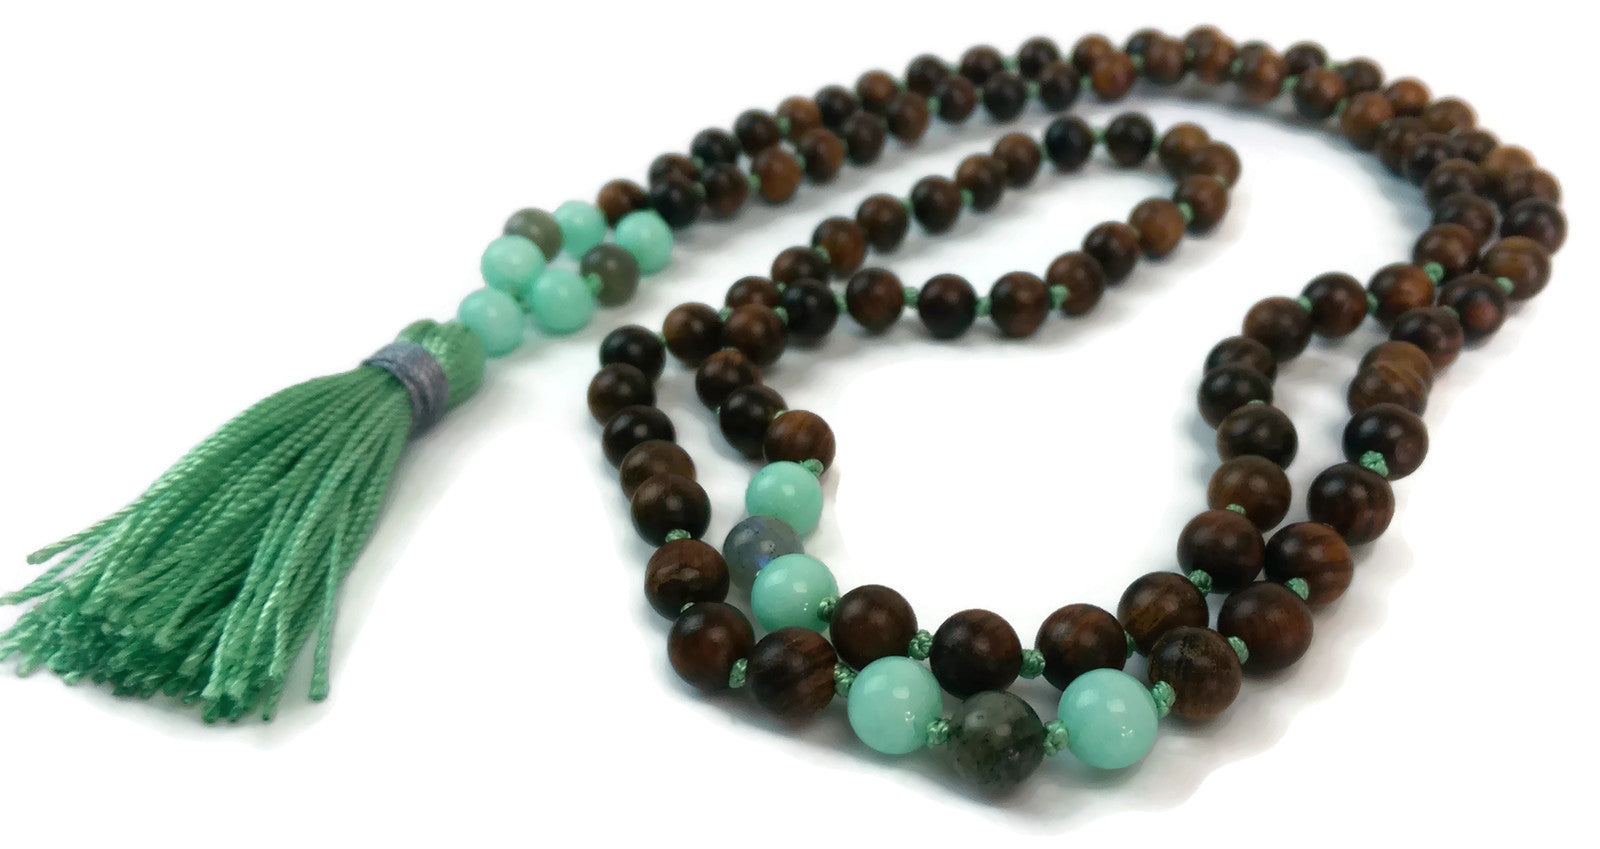 Balance Collection Sandalwood, Amazonite and Labradorite Traditional Knotted 108 Meditation Mala Necklace